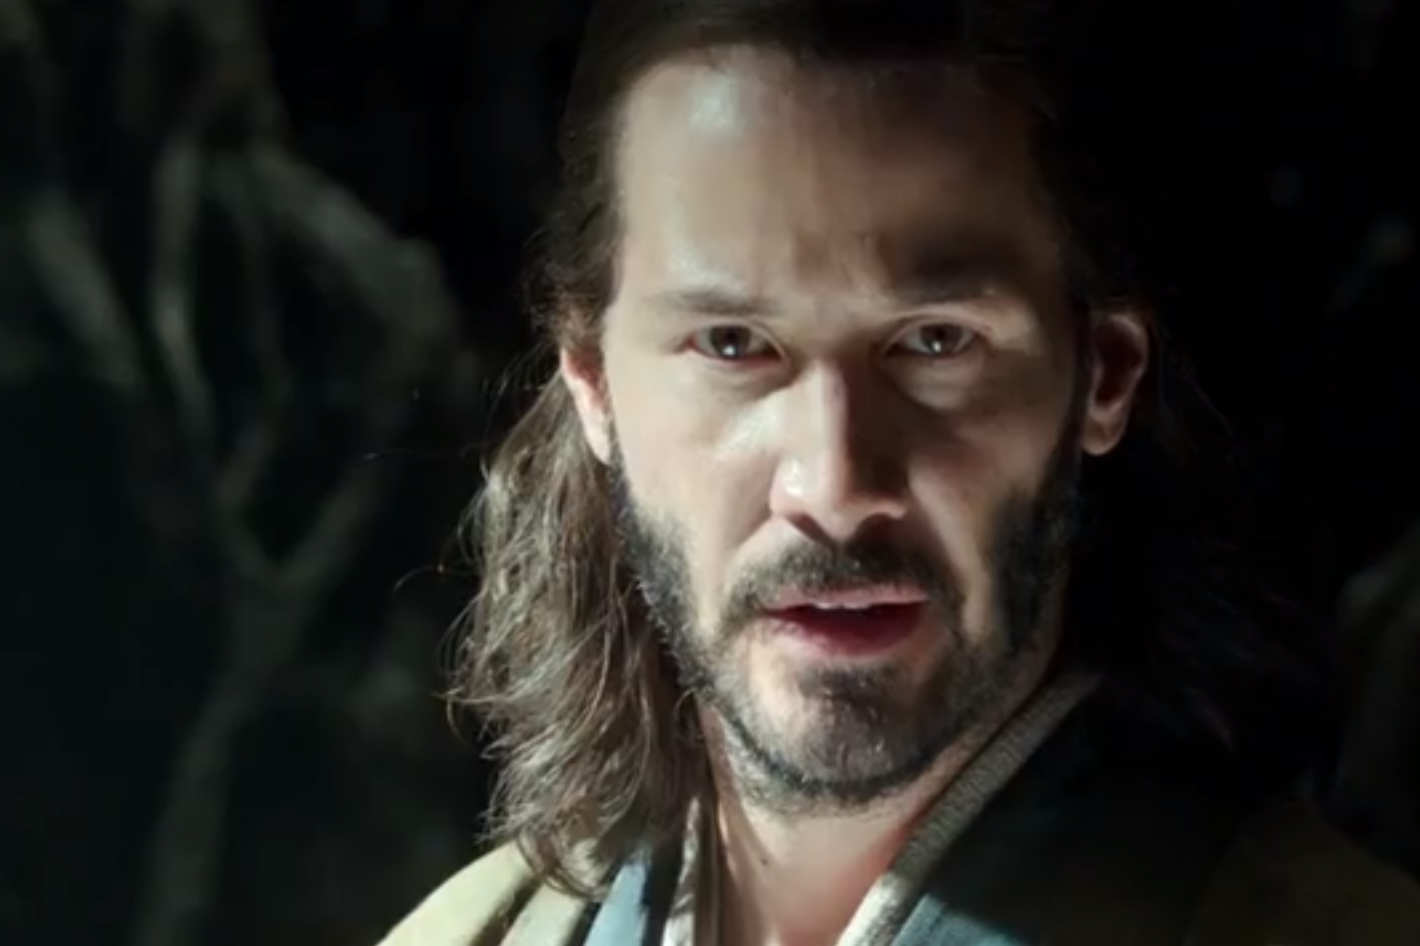 47 Ronin Trailer: Keanu Reeves and the 46 Ronins